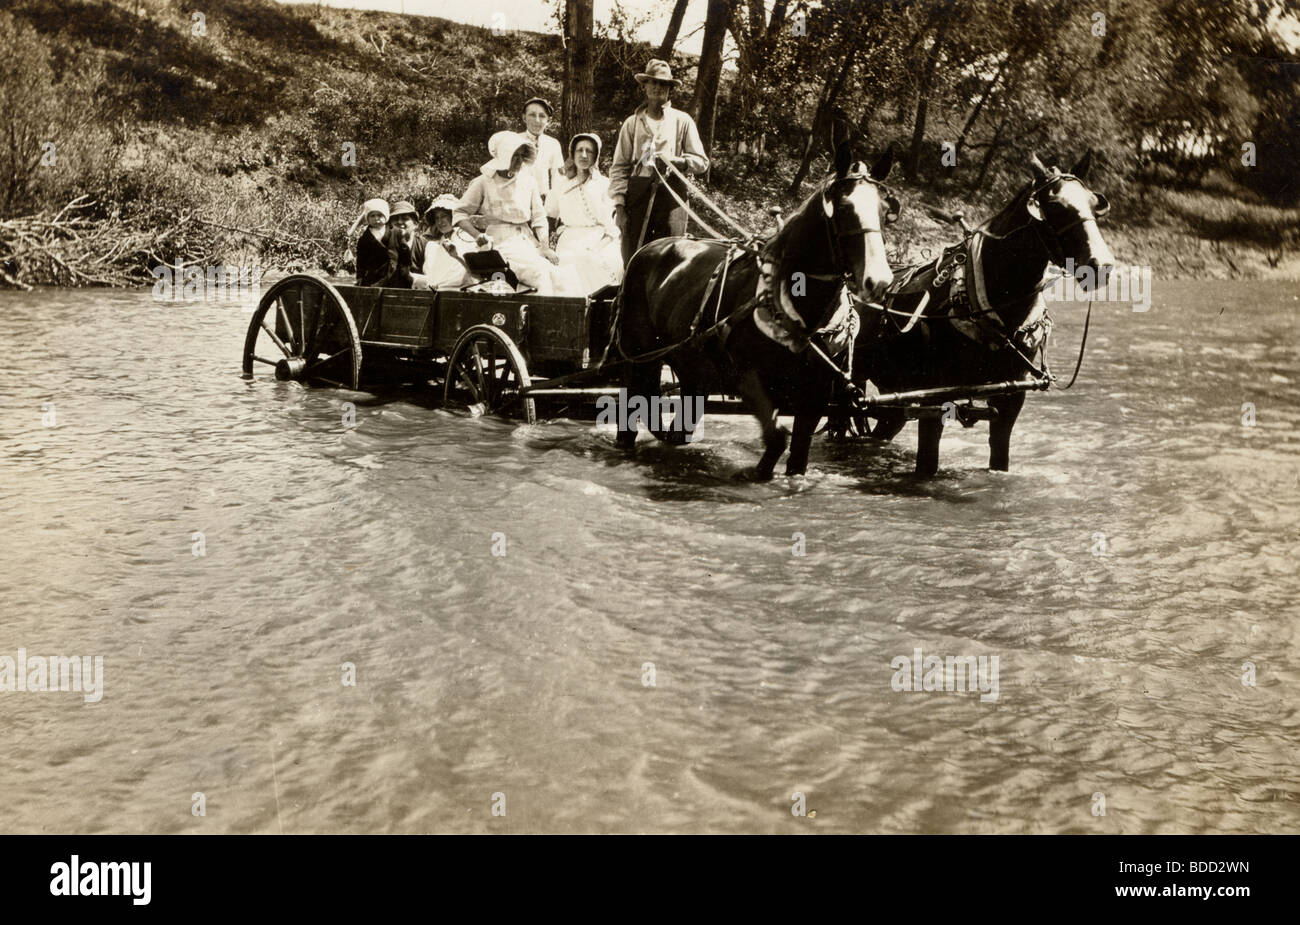 Family in Horse Drawn Wagon Fording River - Stock Image